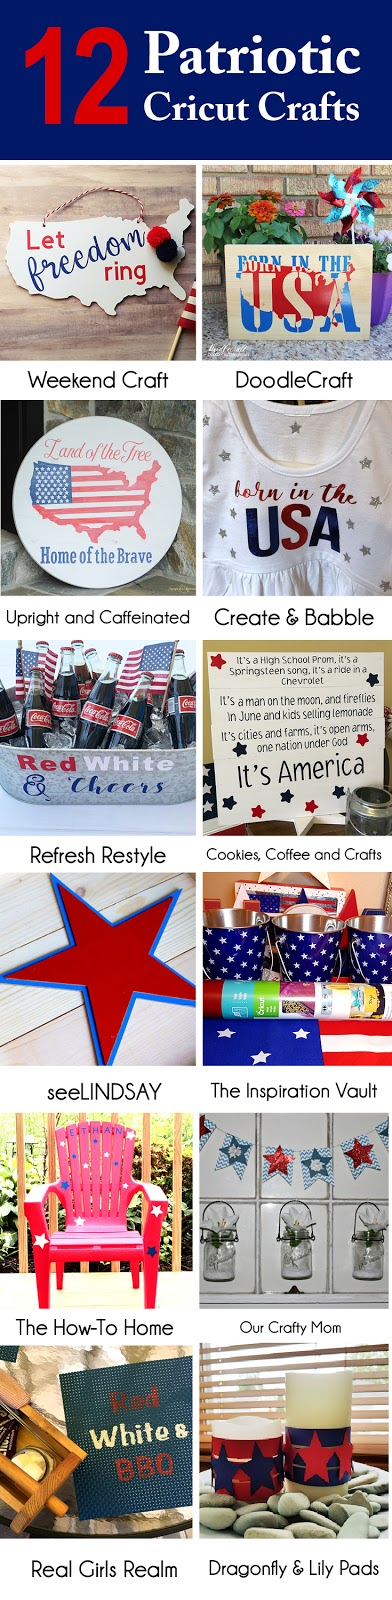 12 Patriotic Cricut Crafts - Craft and Create with Cricut